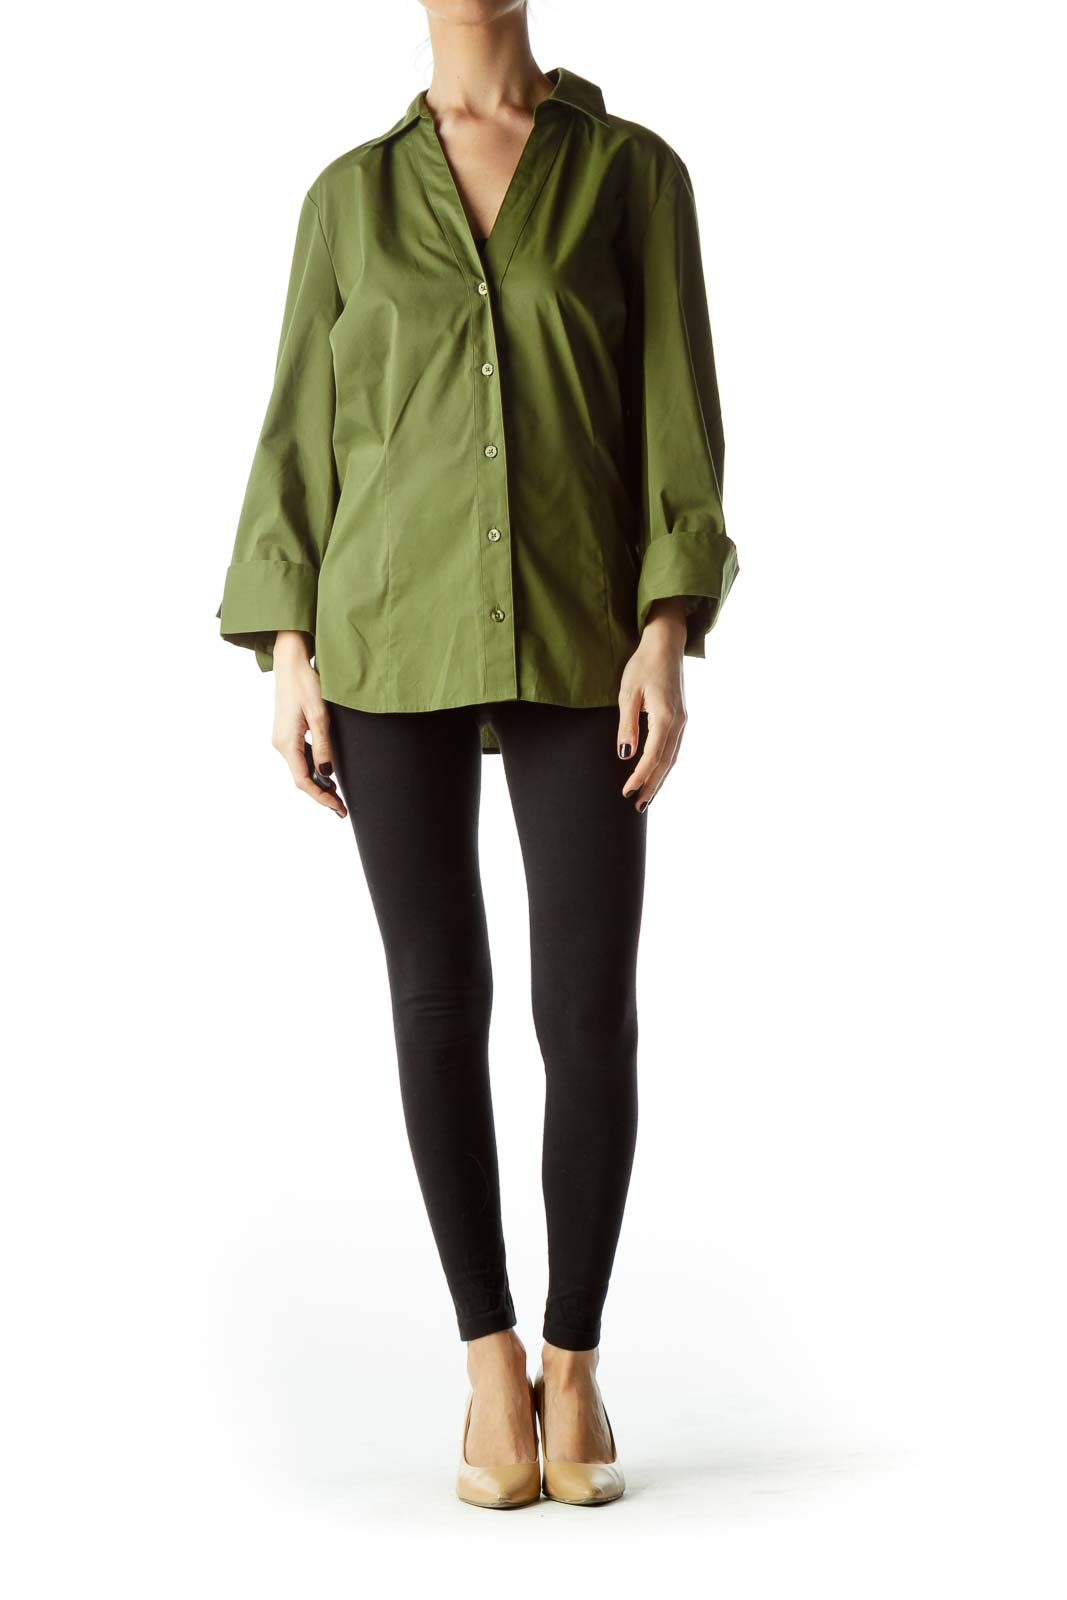 Army Green Long Sleeve Collared Shirt